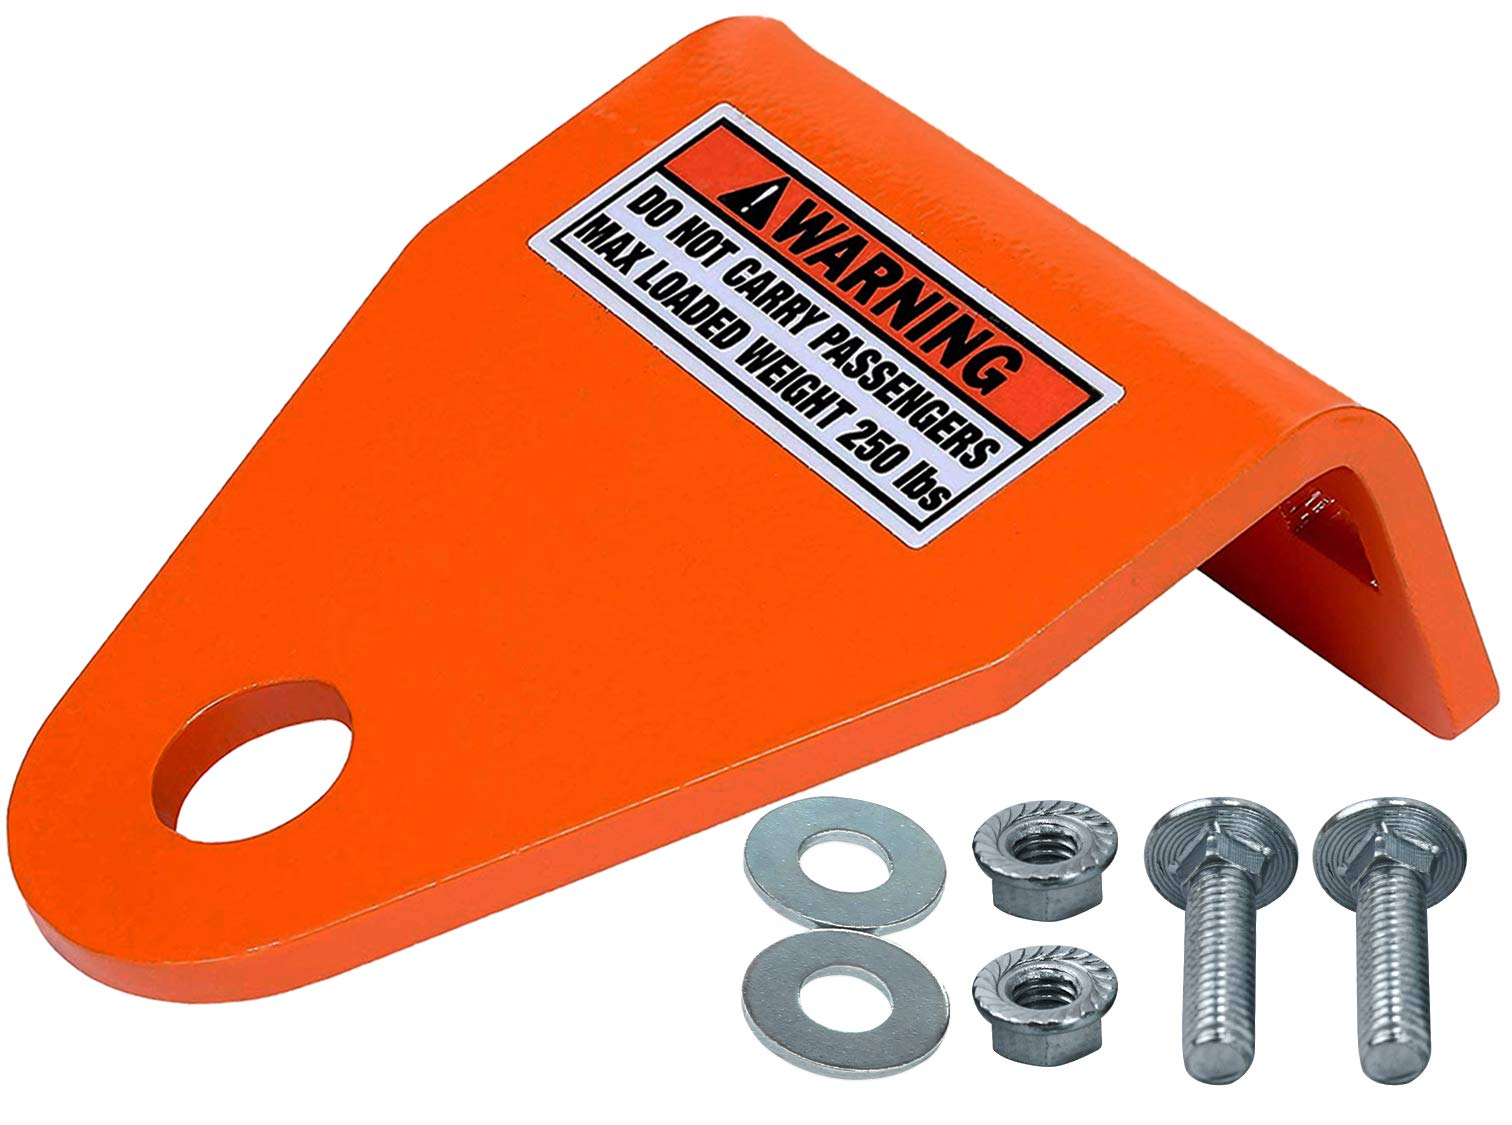 Noa Store Trailer Hitch for Scag Turf Tiger, 2015 Freedom Z & New Liberty Z Riding Lawn Mower